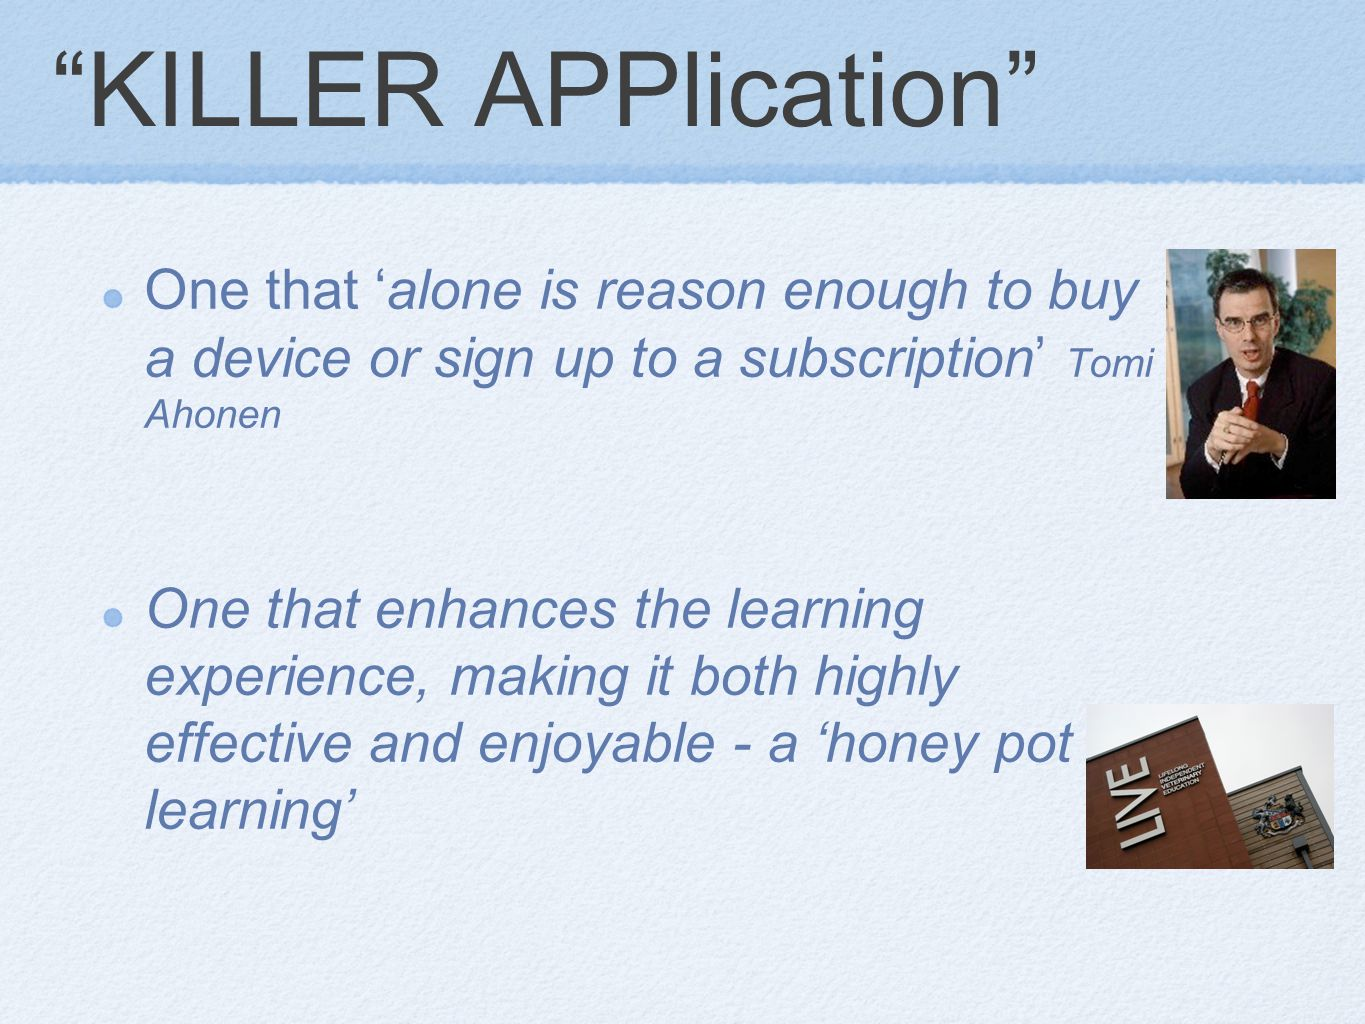 KILLER APPlication One that 'alone is reason enough to buy a device or sign up to a subscription' Tomi Ahonen One that enhances the learning experience, making it both highly effective and enjoyable - a 'honey pot for learning'